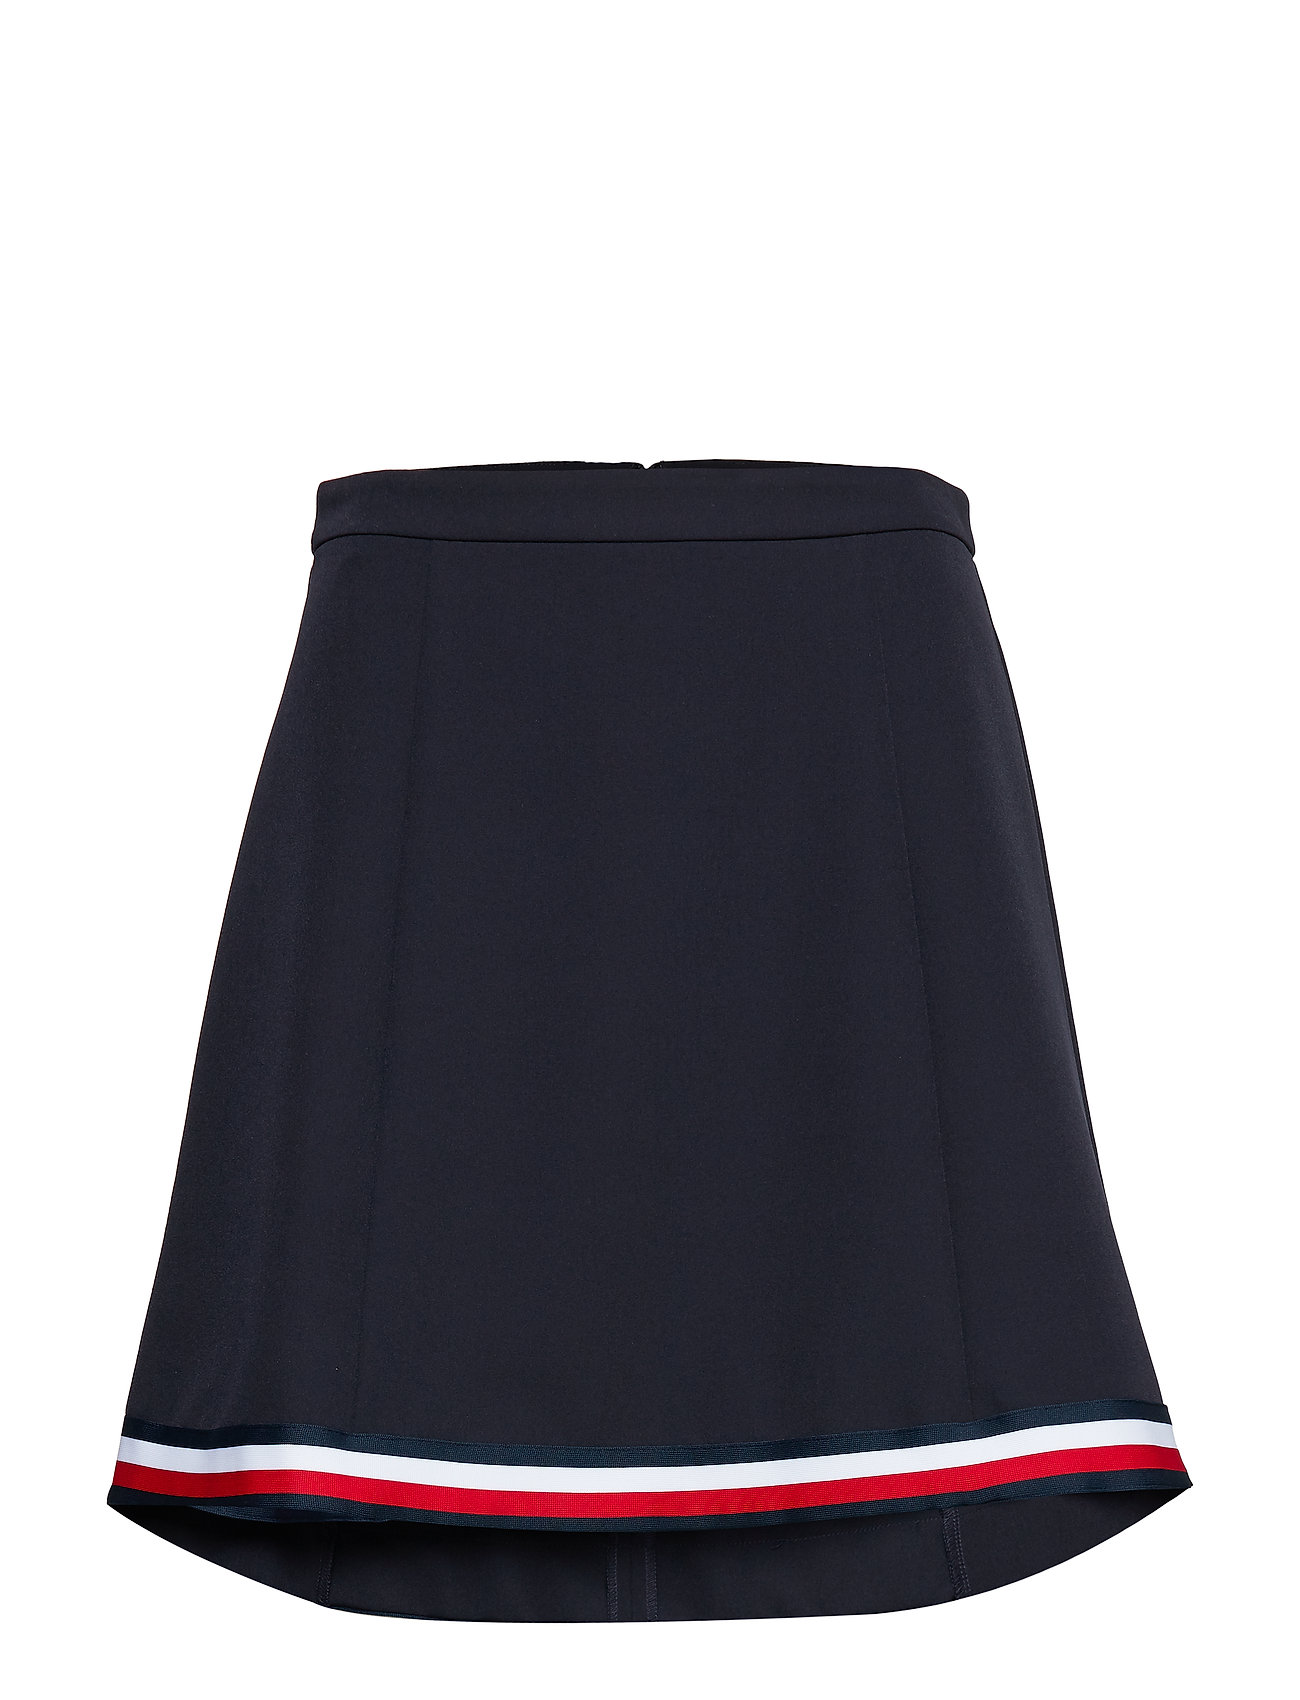 Tommy Hilfiger ANGELA GLOBAL STP SH - MIDNIGHT